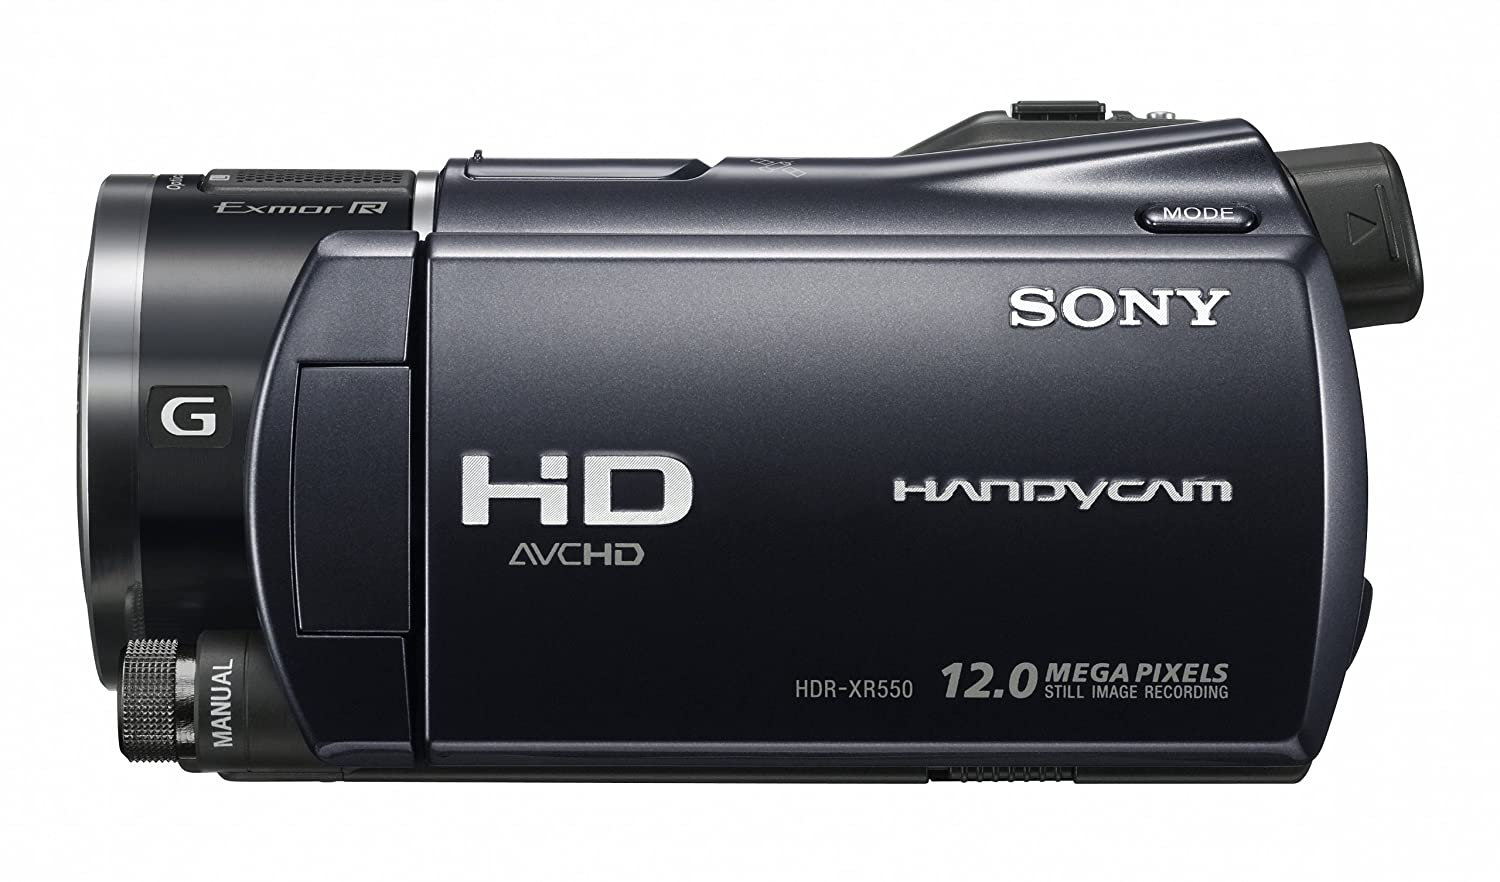 amazon com sony hdr xr550v 240gb high definition hdd handycam rh amazon com sony handycam hdr-xr550 manual sony hdr-xr550v manual